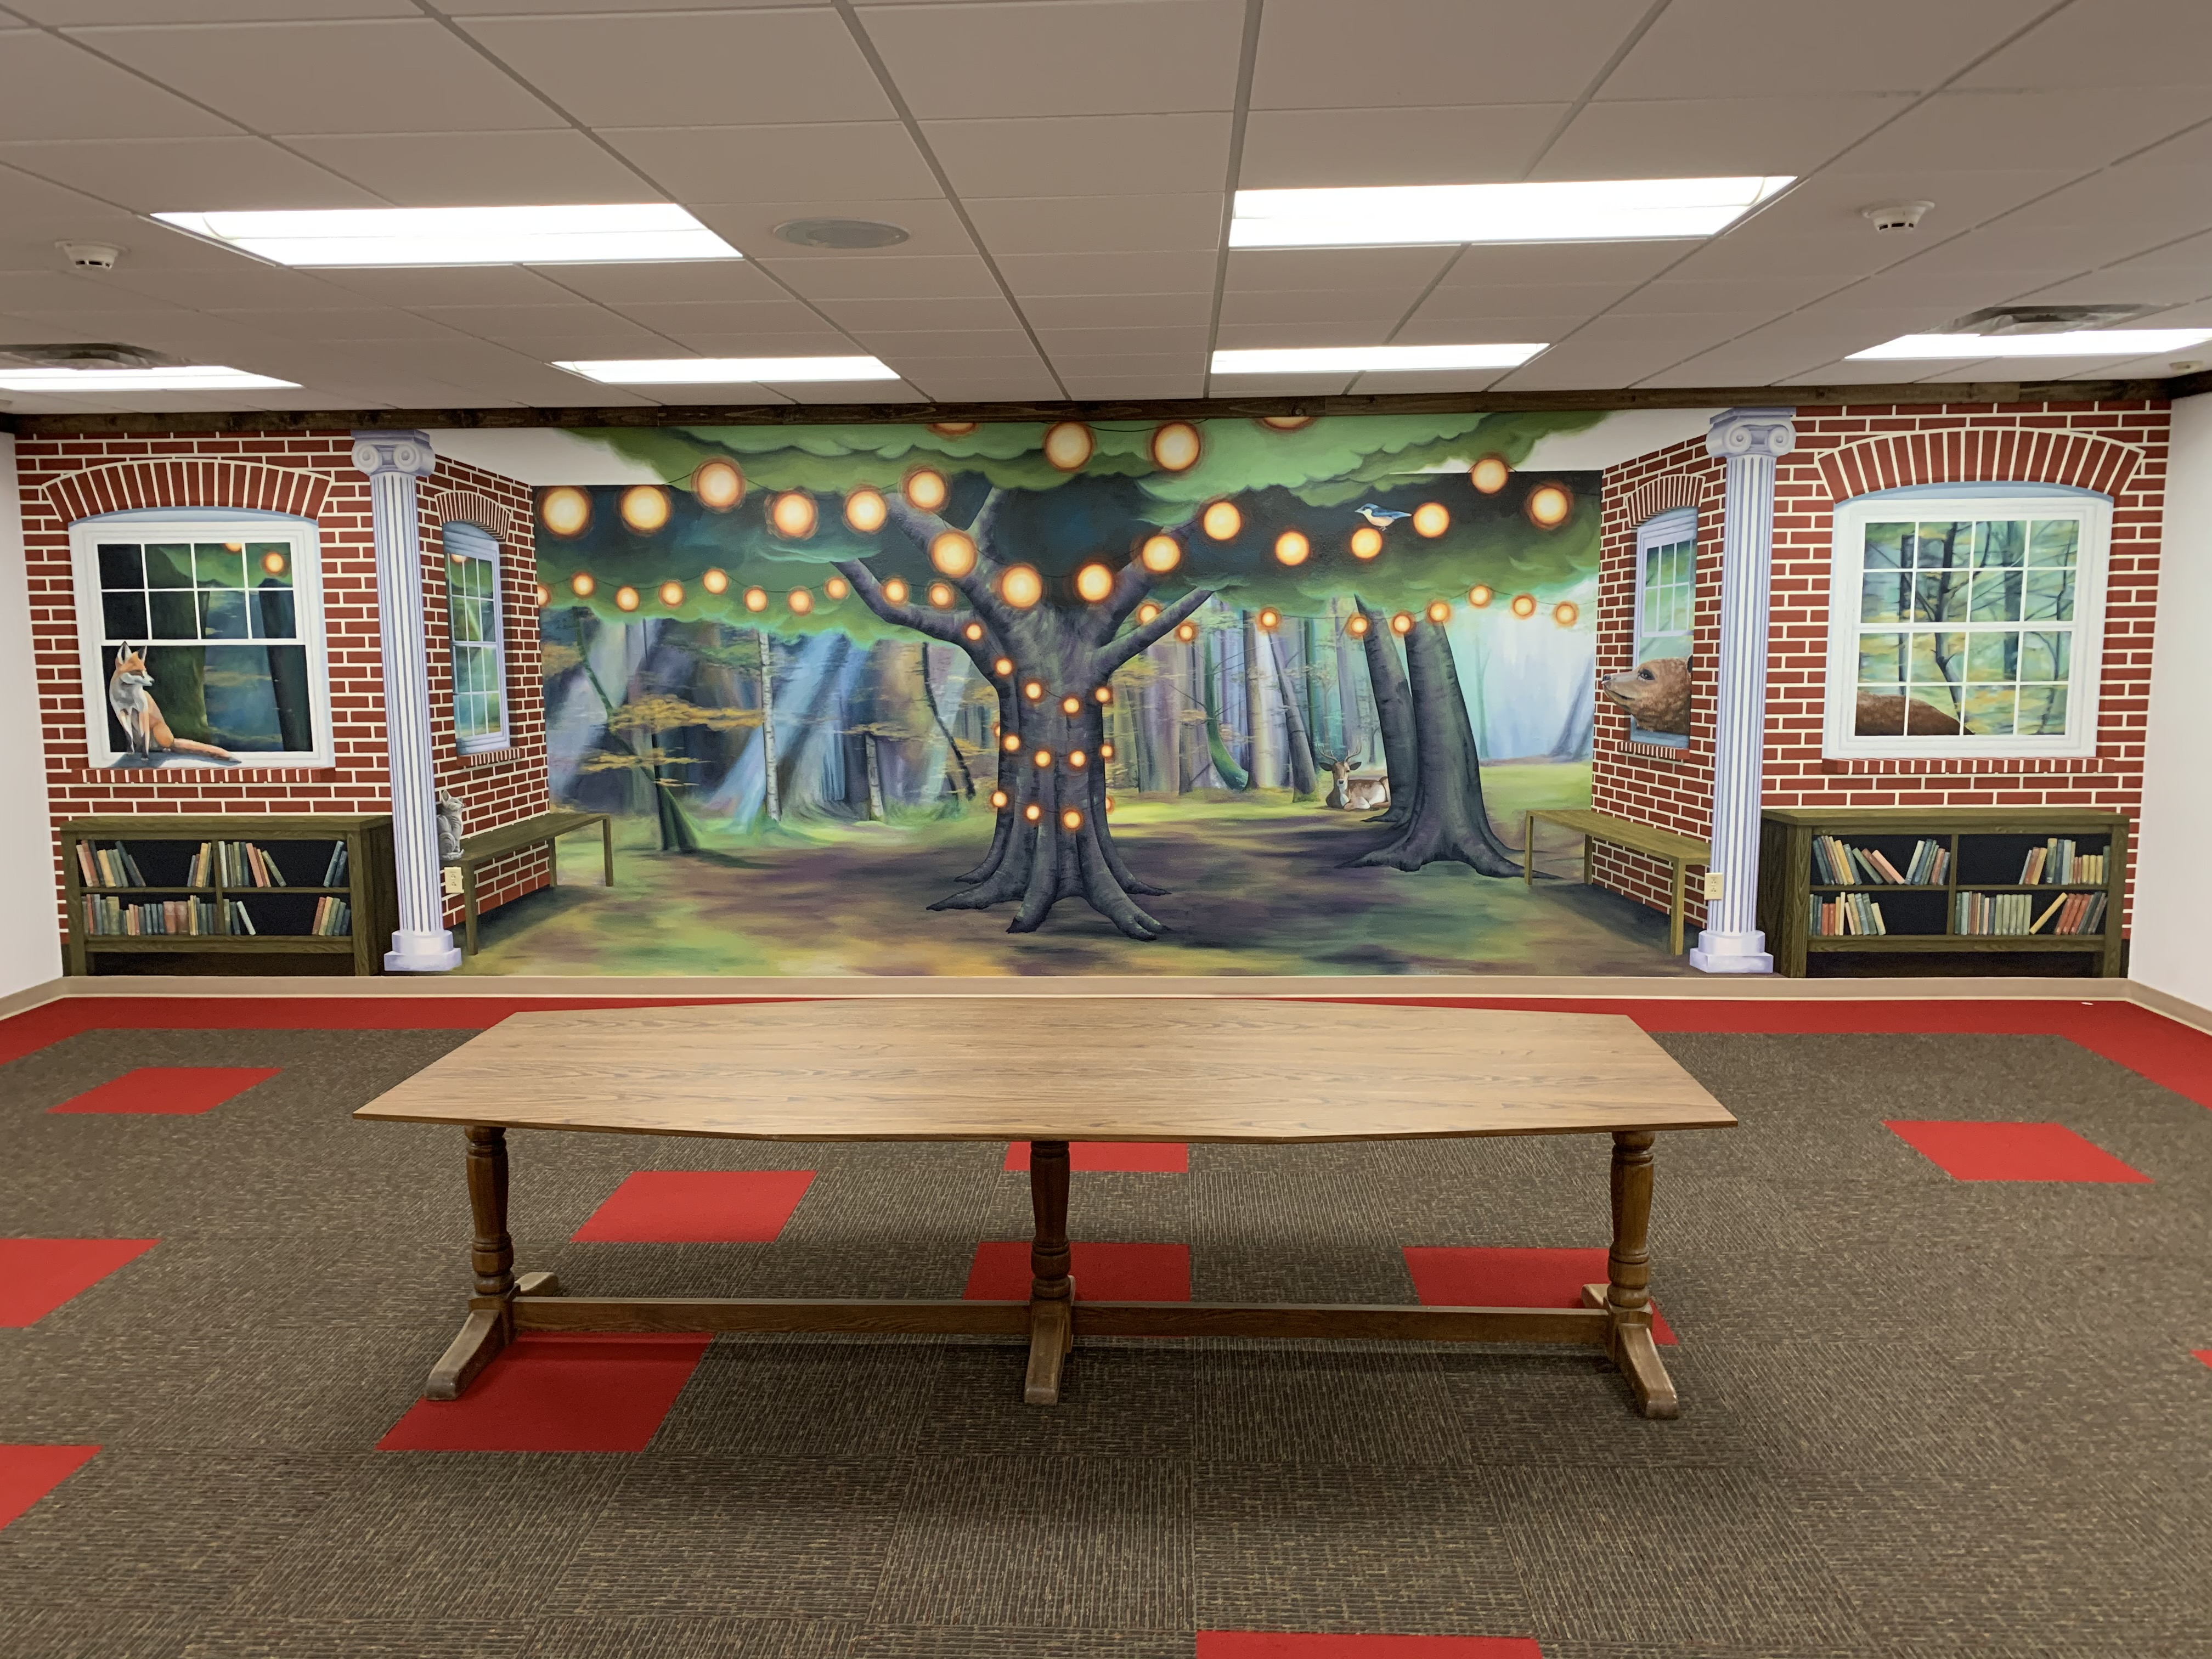 Brewer Public Library's Storytime Room